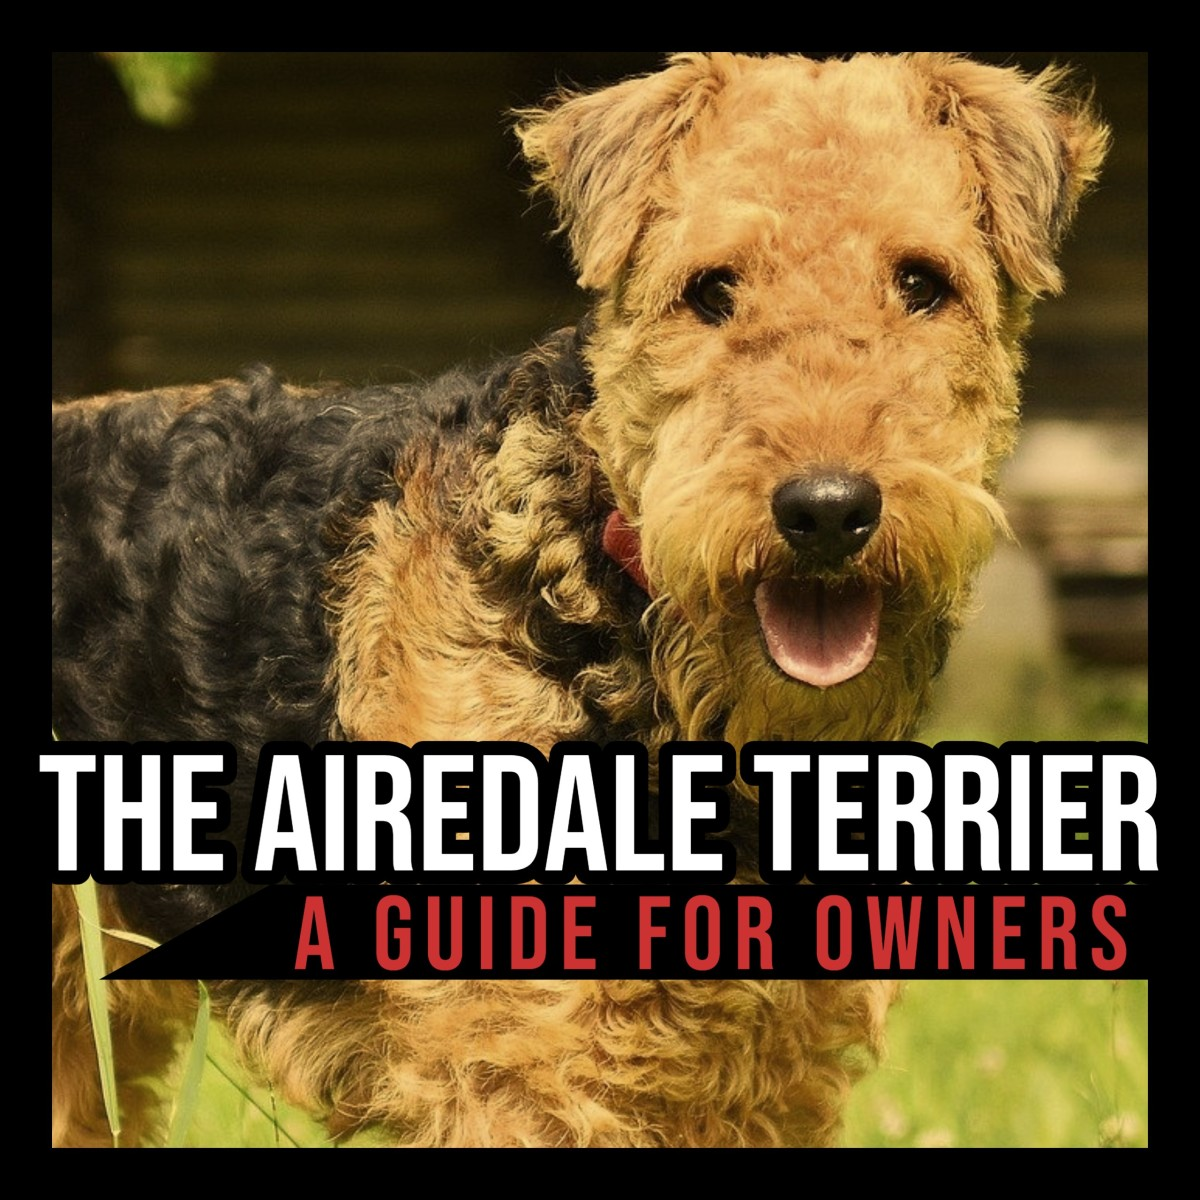 The Airedale Terrier: A Guide for Owners